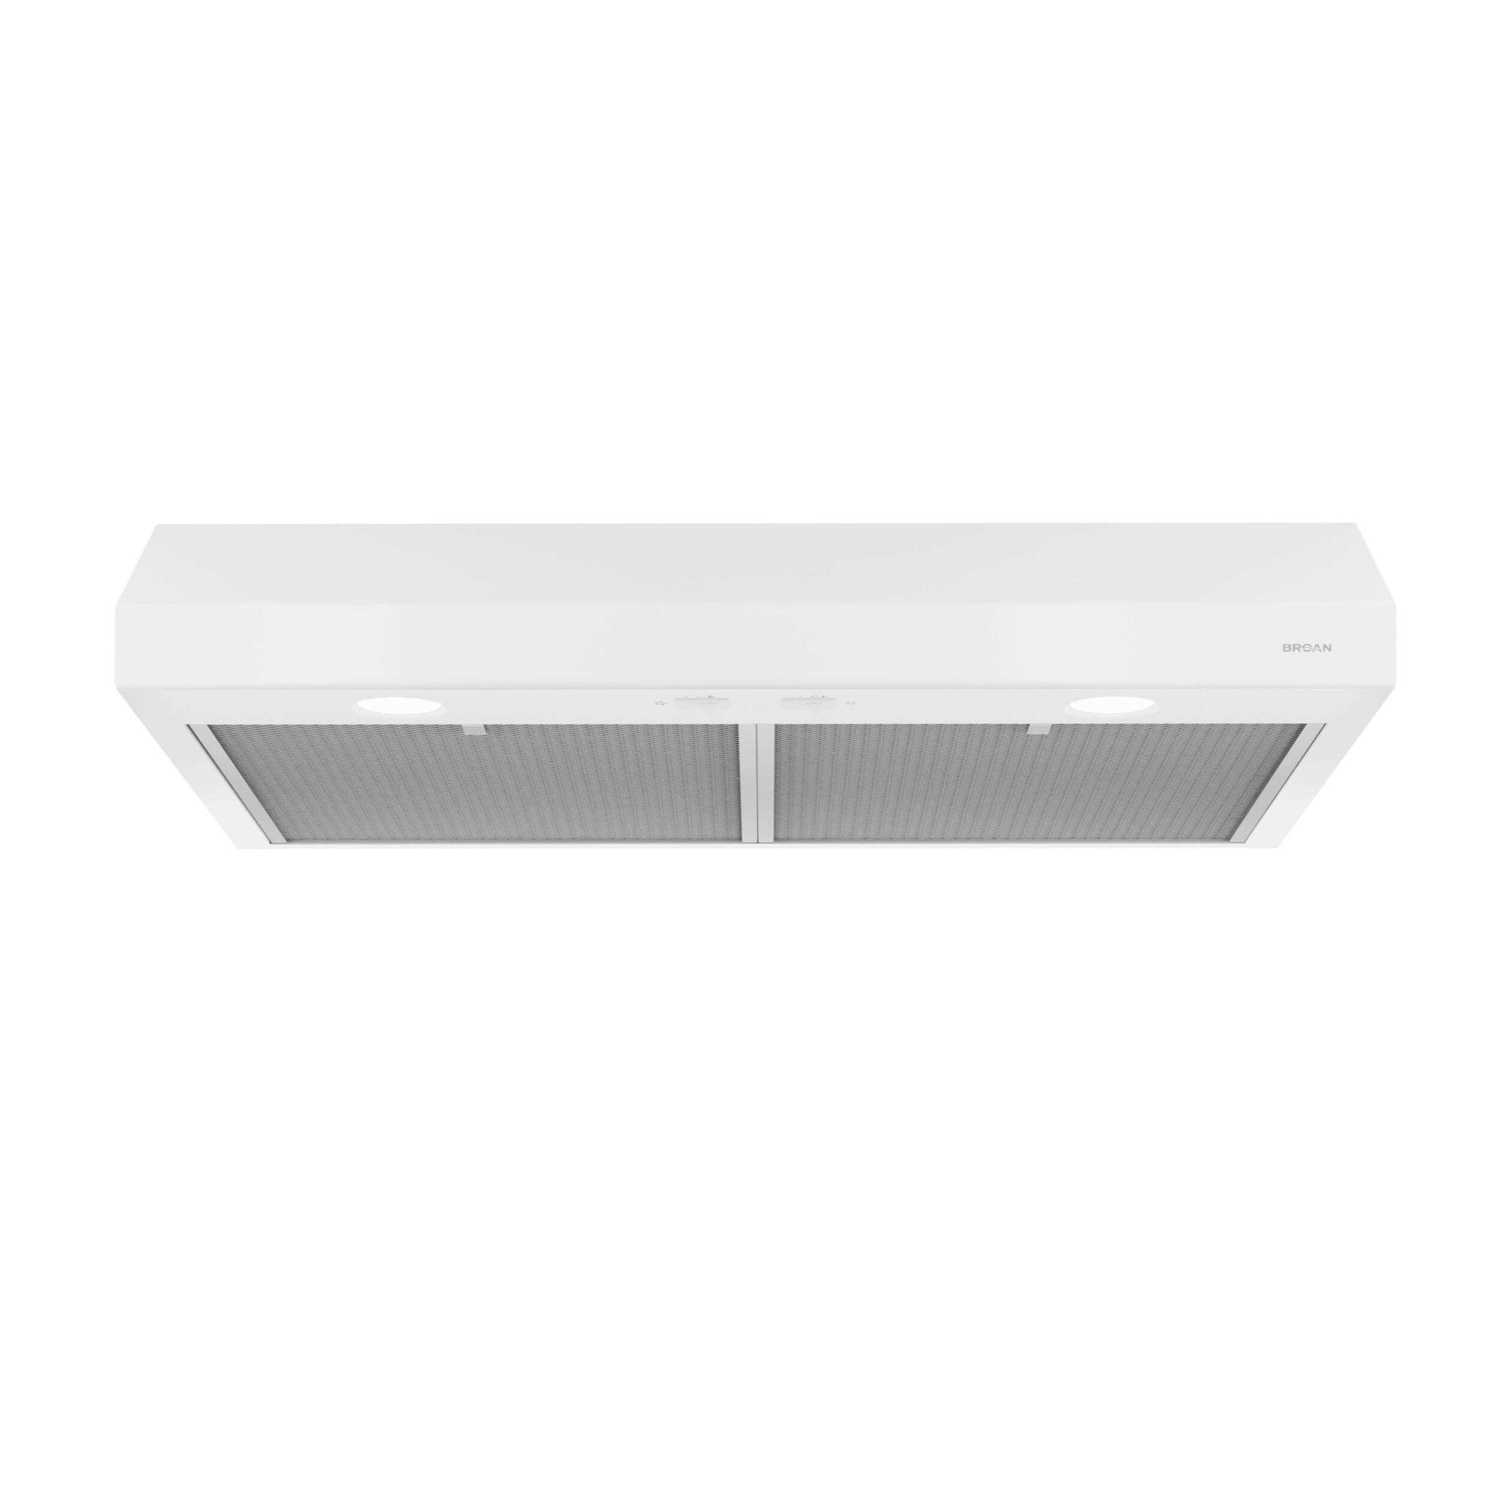 Glacier 36-Inch 250 CFM White Range Hood with light Photo #1